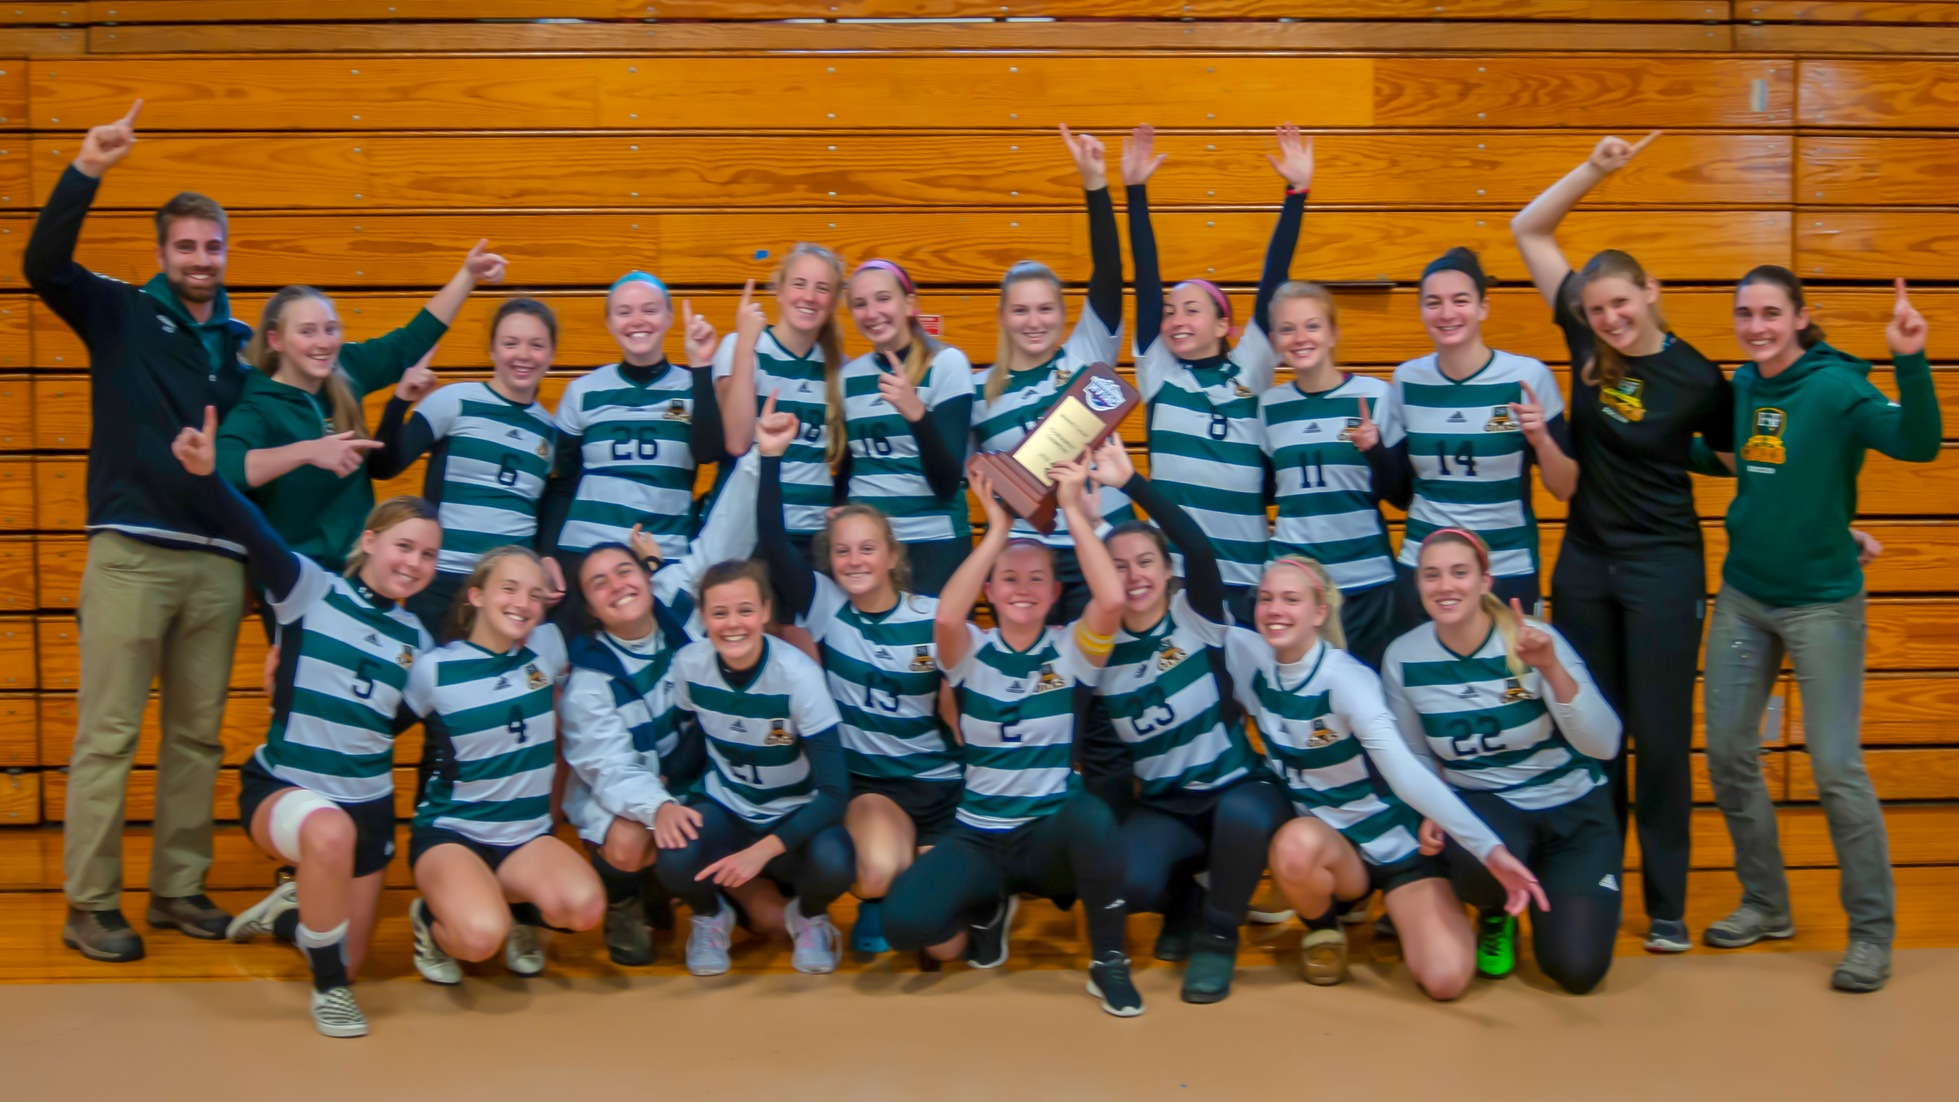 SUNY ESF Wins Third Straight Women's Soccer Title